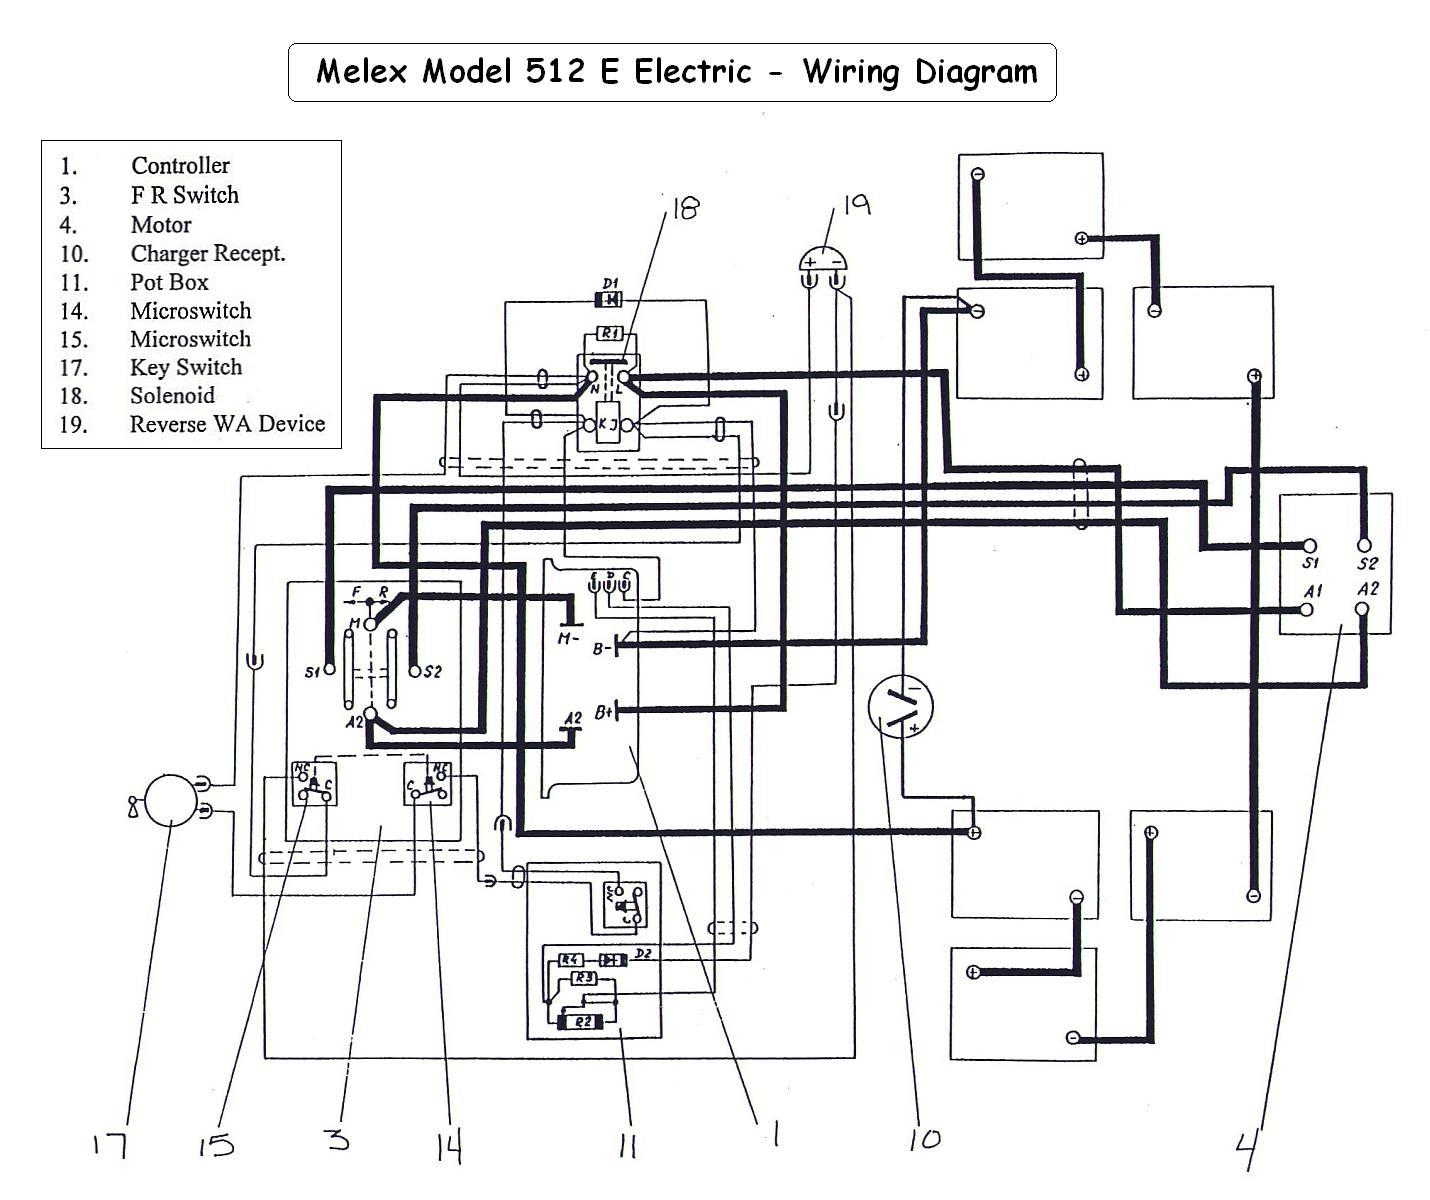 hight resolution of vintagegolfcartparts com golf cart solenoid wiring diagram melex 512 wiring diagram